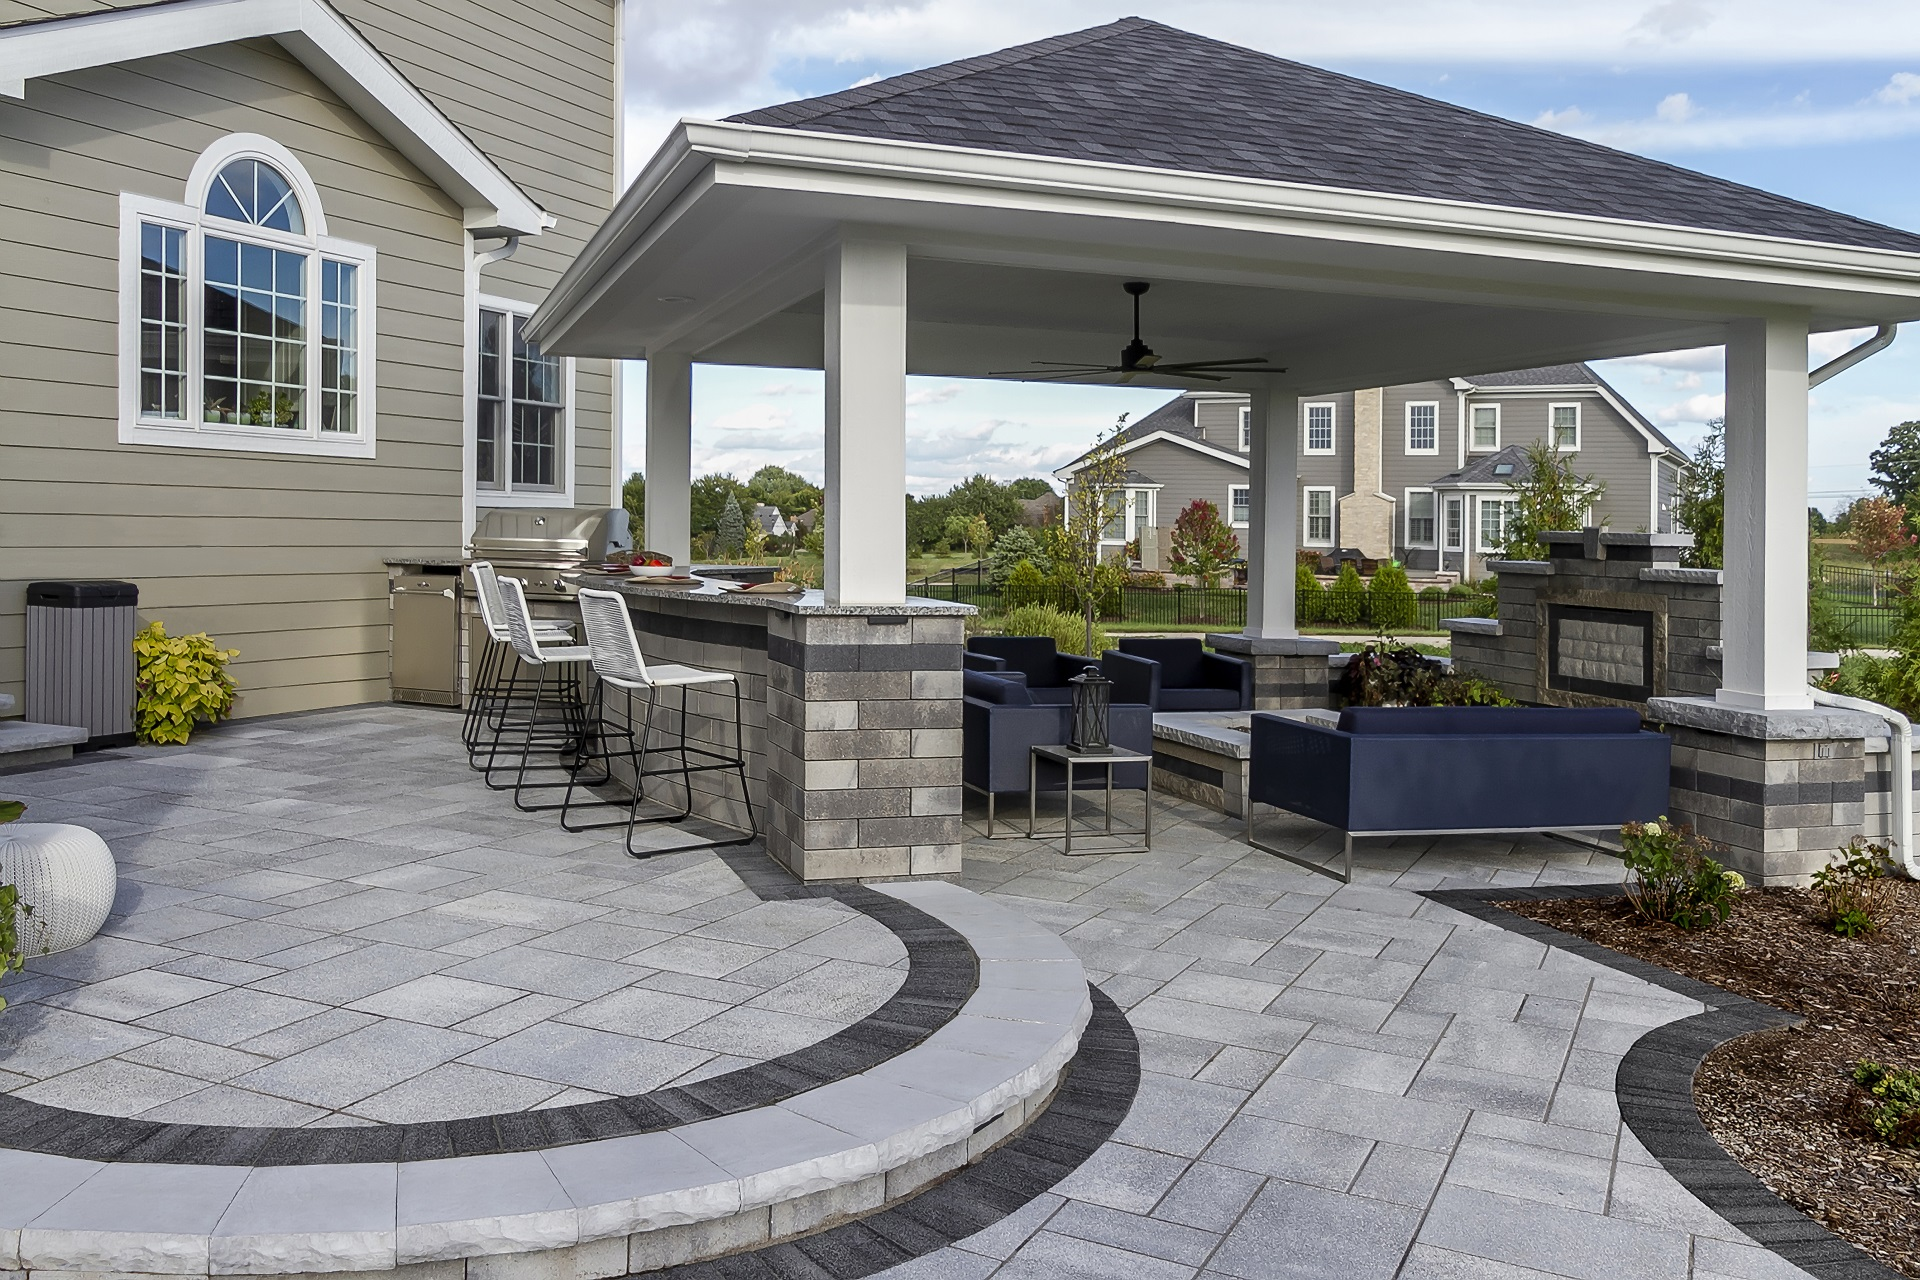 Patio pavers and new outdoor kitchen in Macomb Township MI